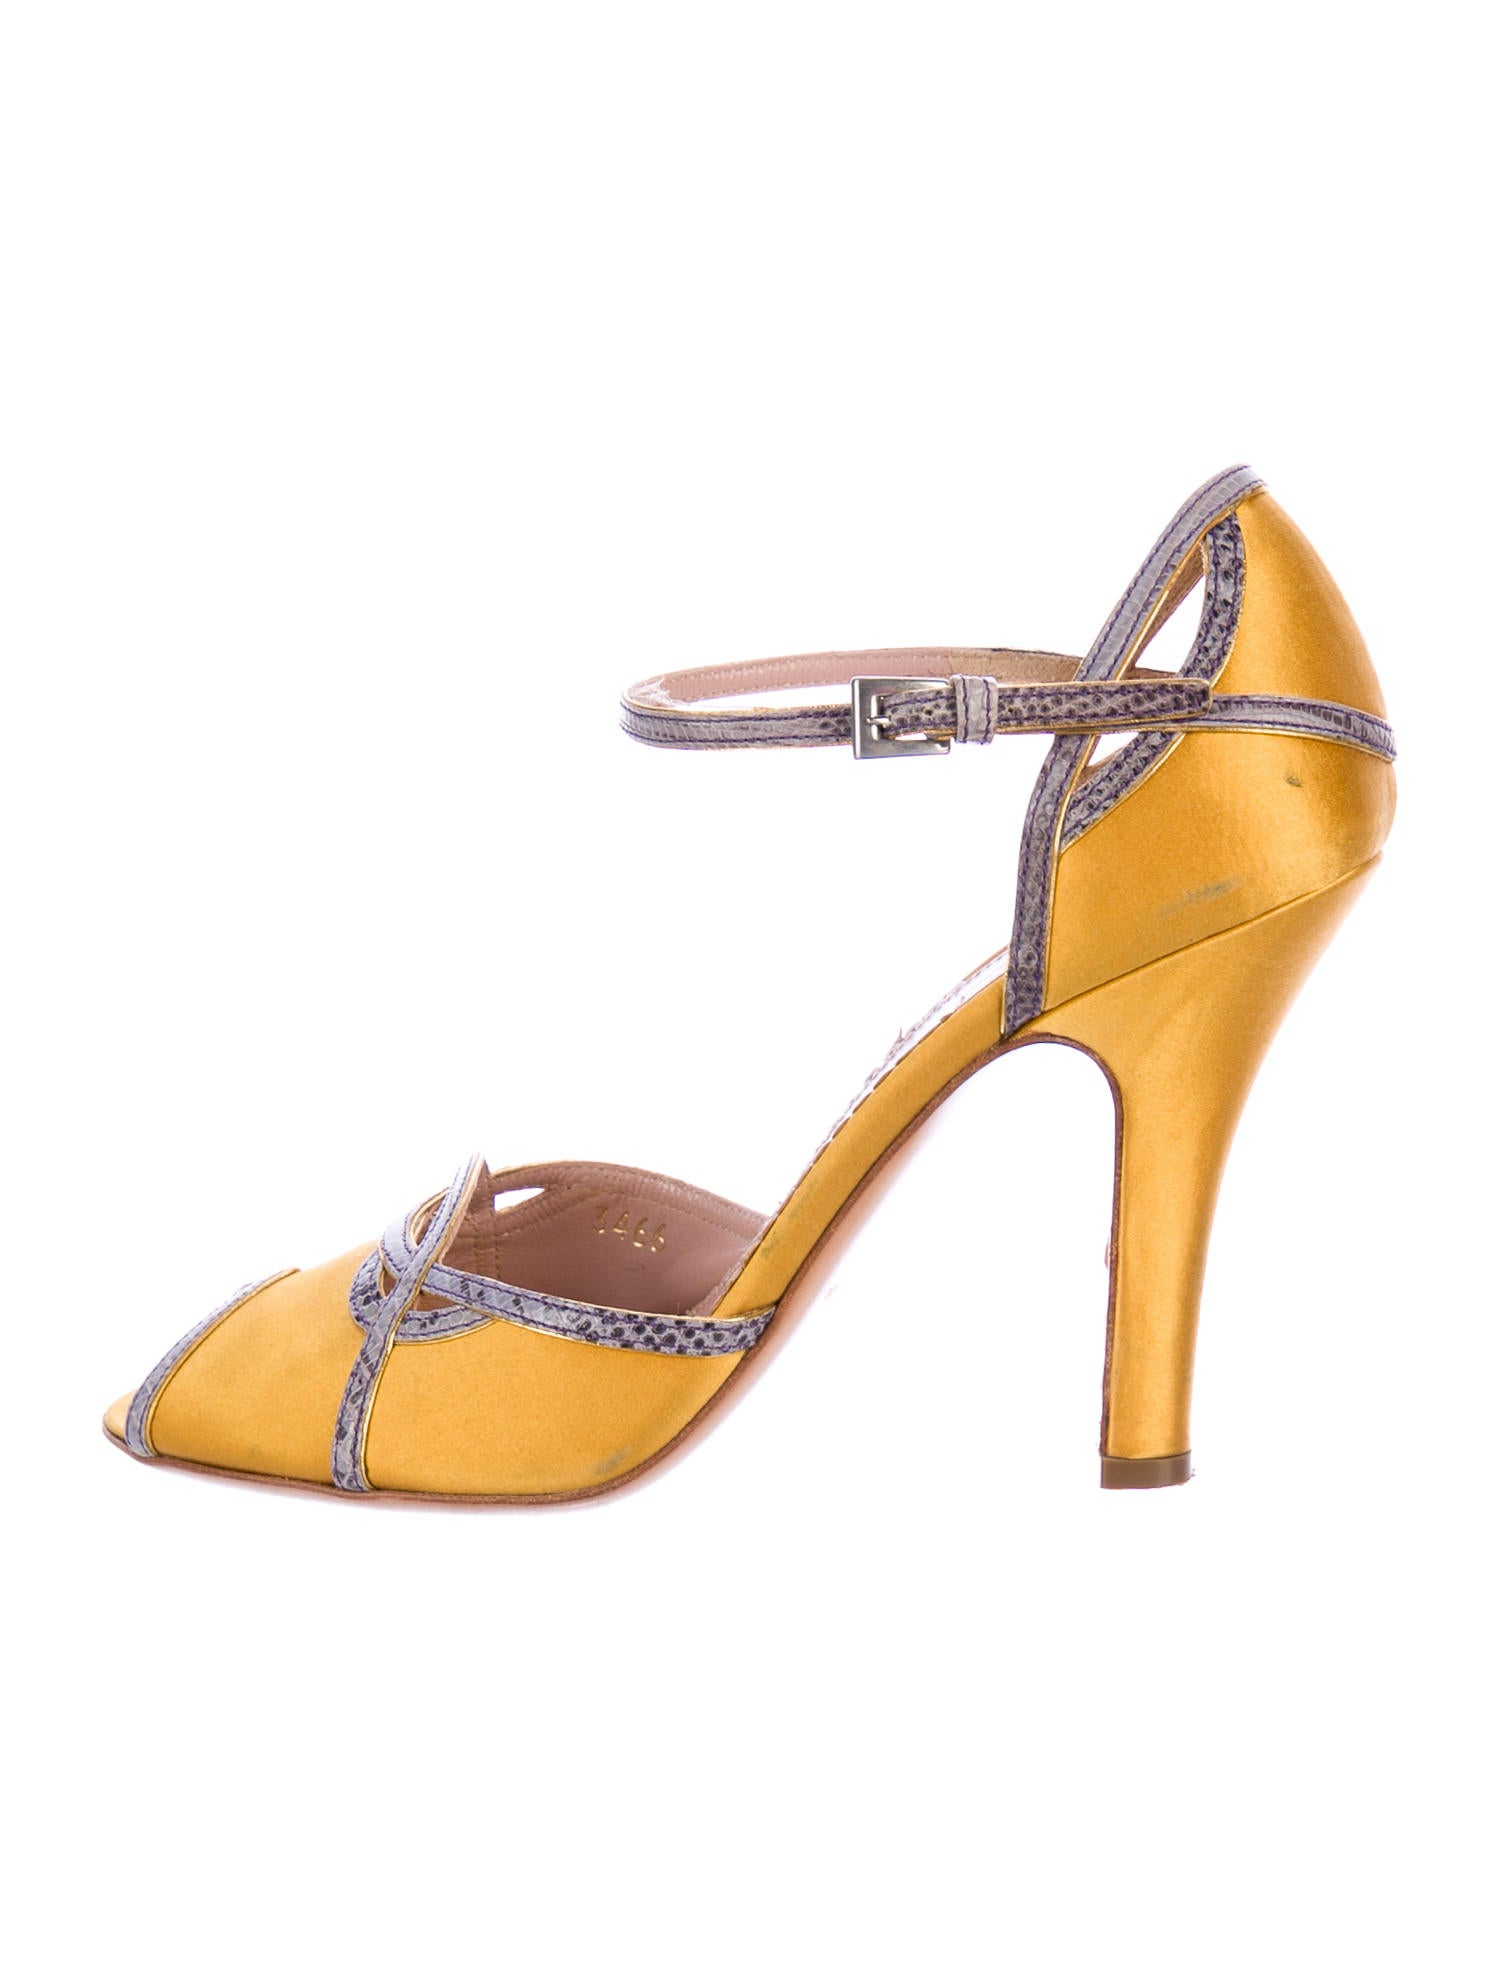 cheap newest original for sale Prada Lizard-Trimmed Satin Pumps cheap discount authentic great deals 4IVqogN